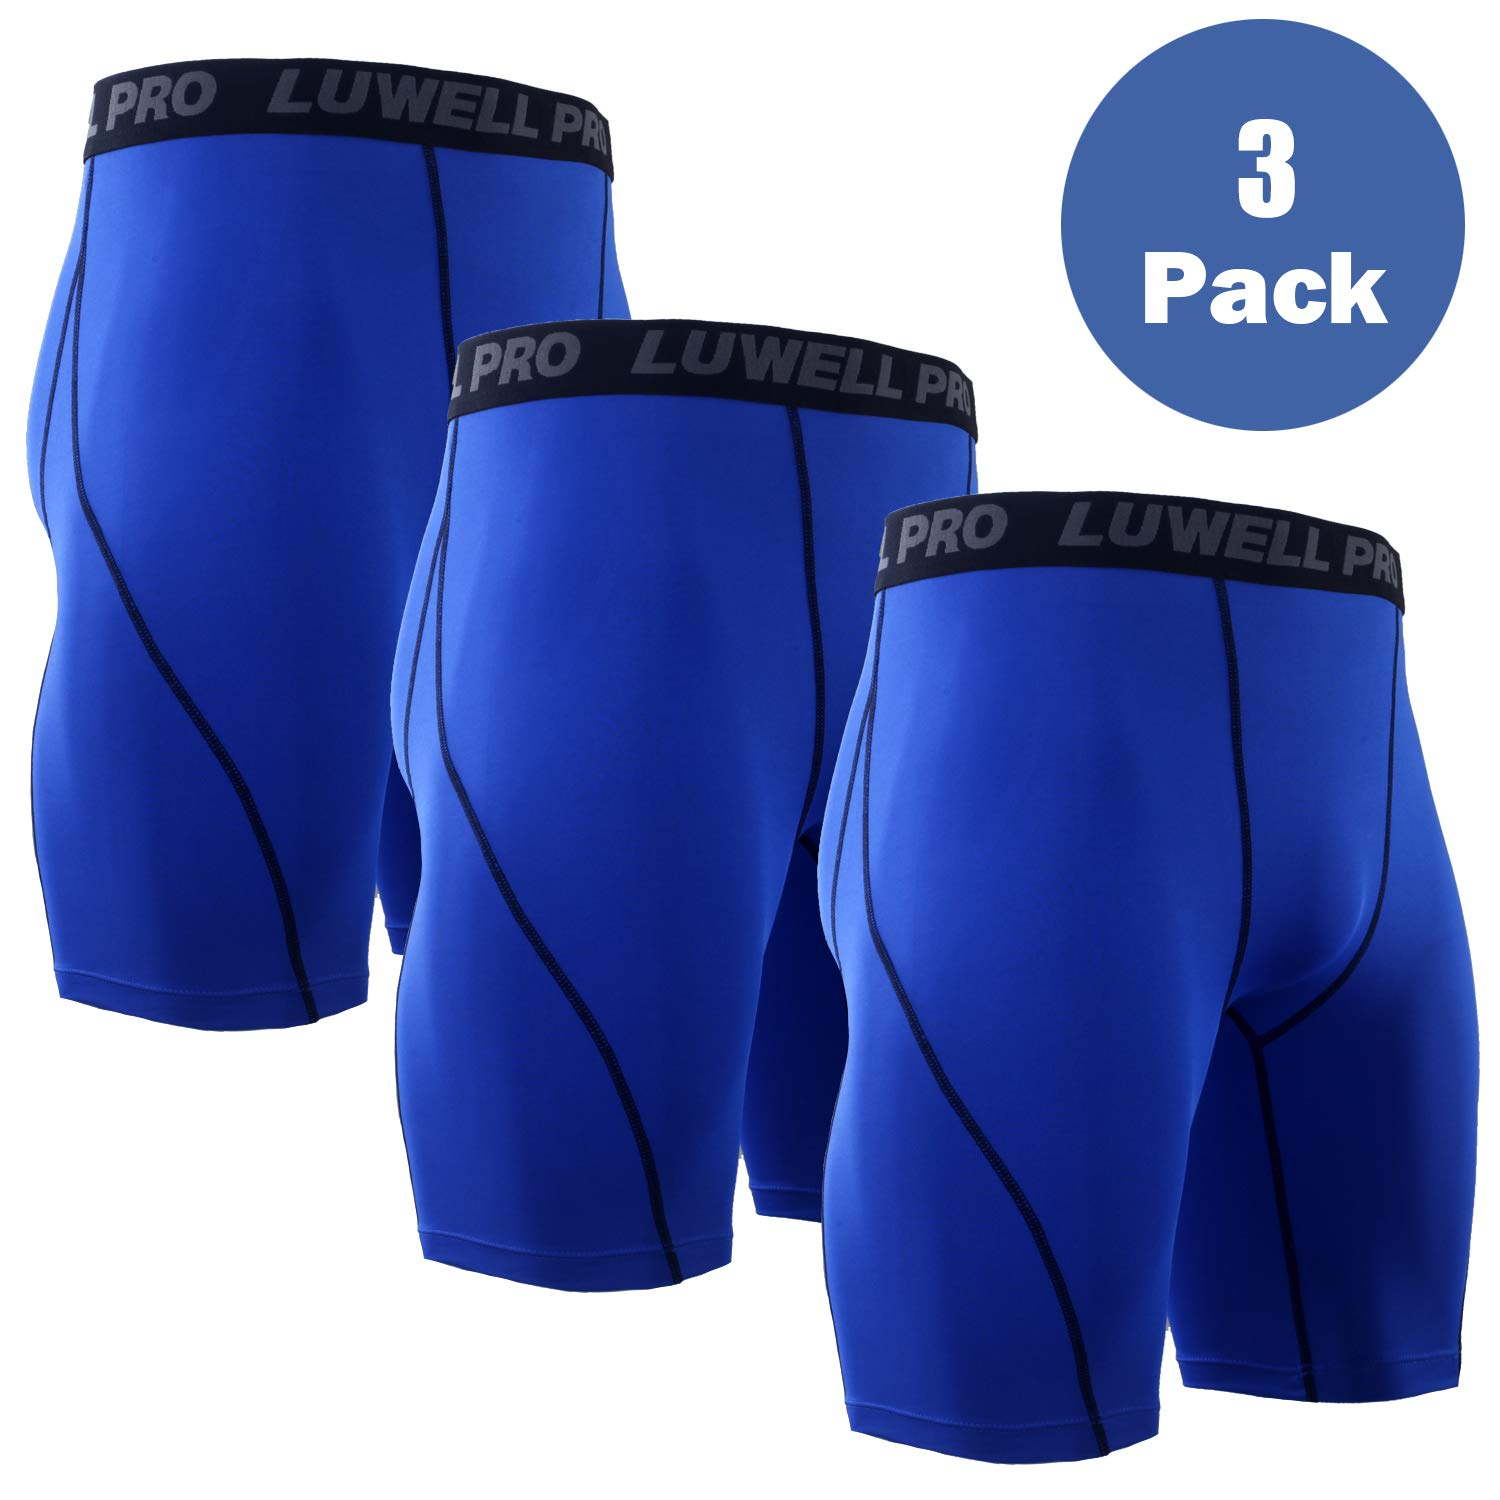 LUWELL PRO Men's 3 Pack Compression Shorts Baselayer Cool Dry Sports Tights Shorts for Running,Workout,Training(3Blue,S)